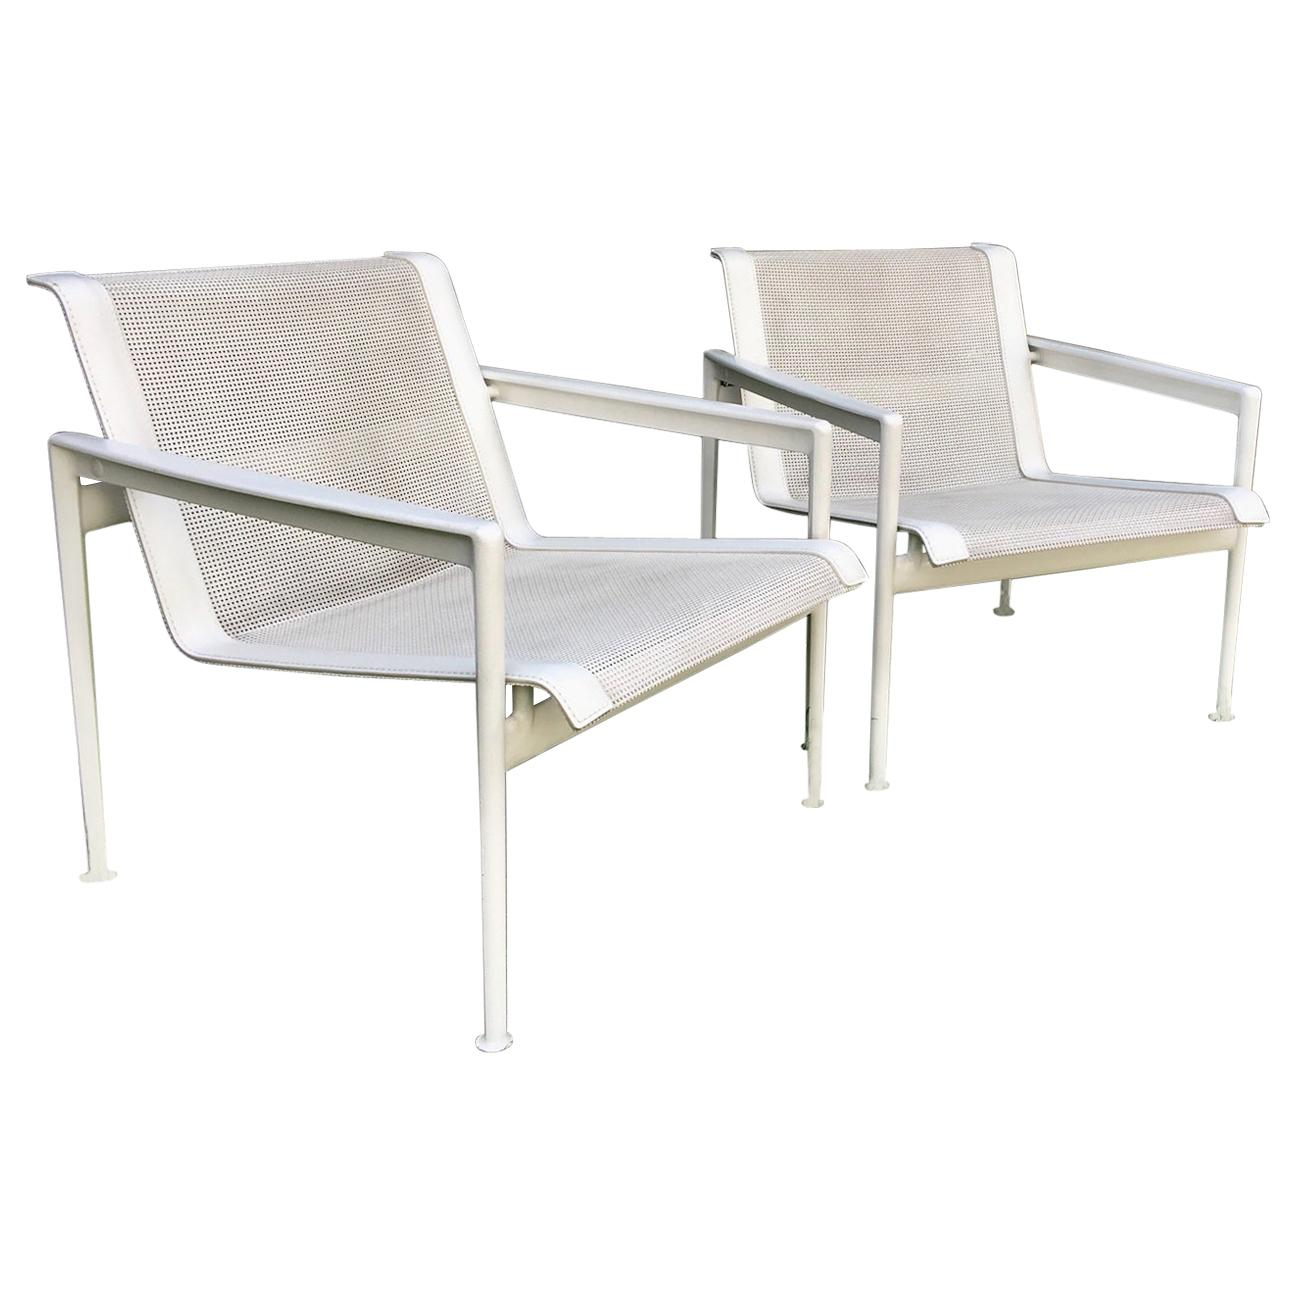 Pair of Richard Schultz 1966 Series Lounge Chair with Arms for B & B Italia